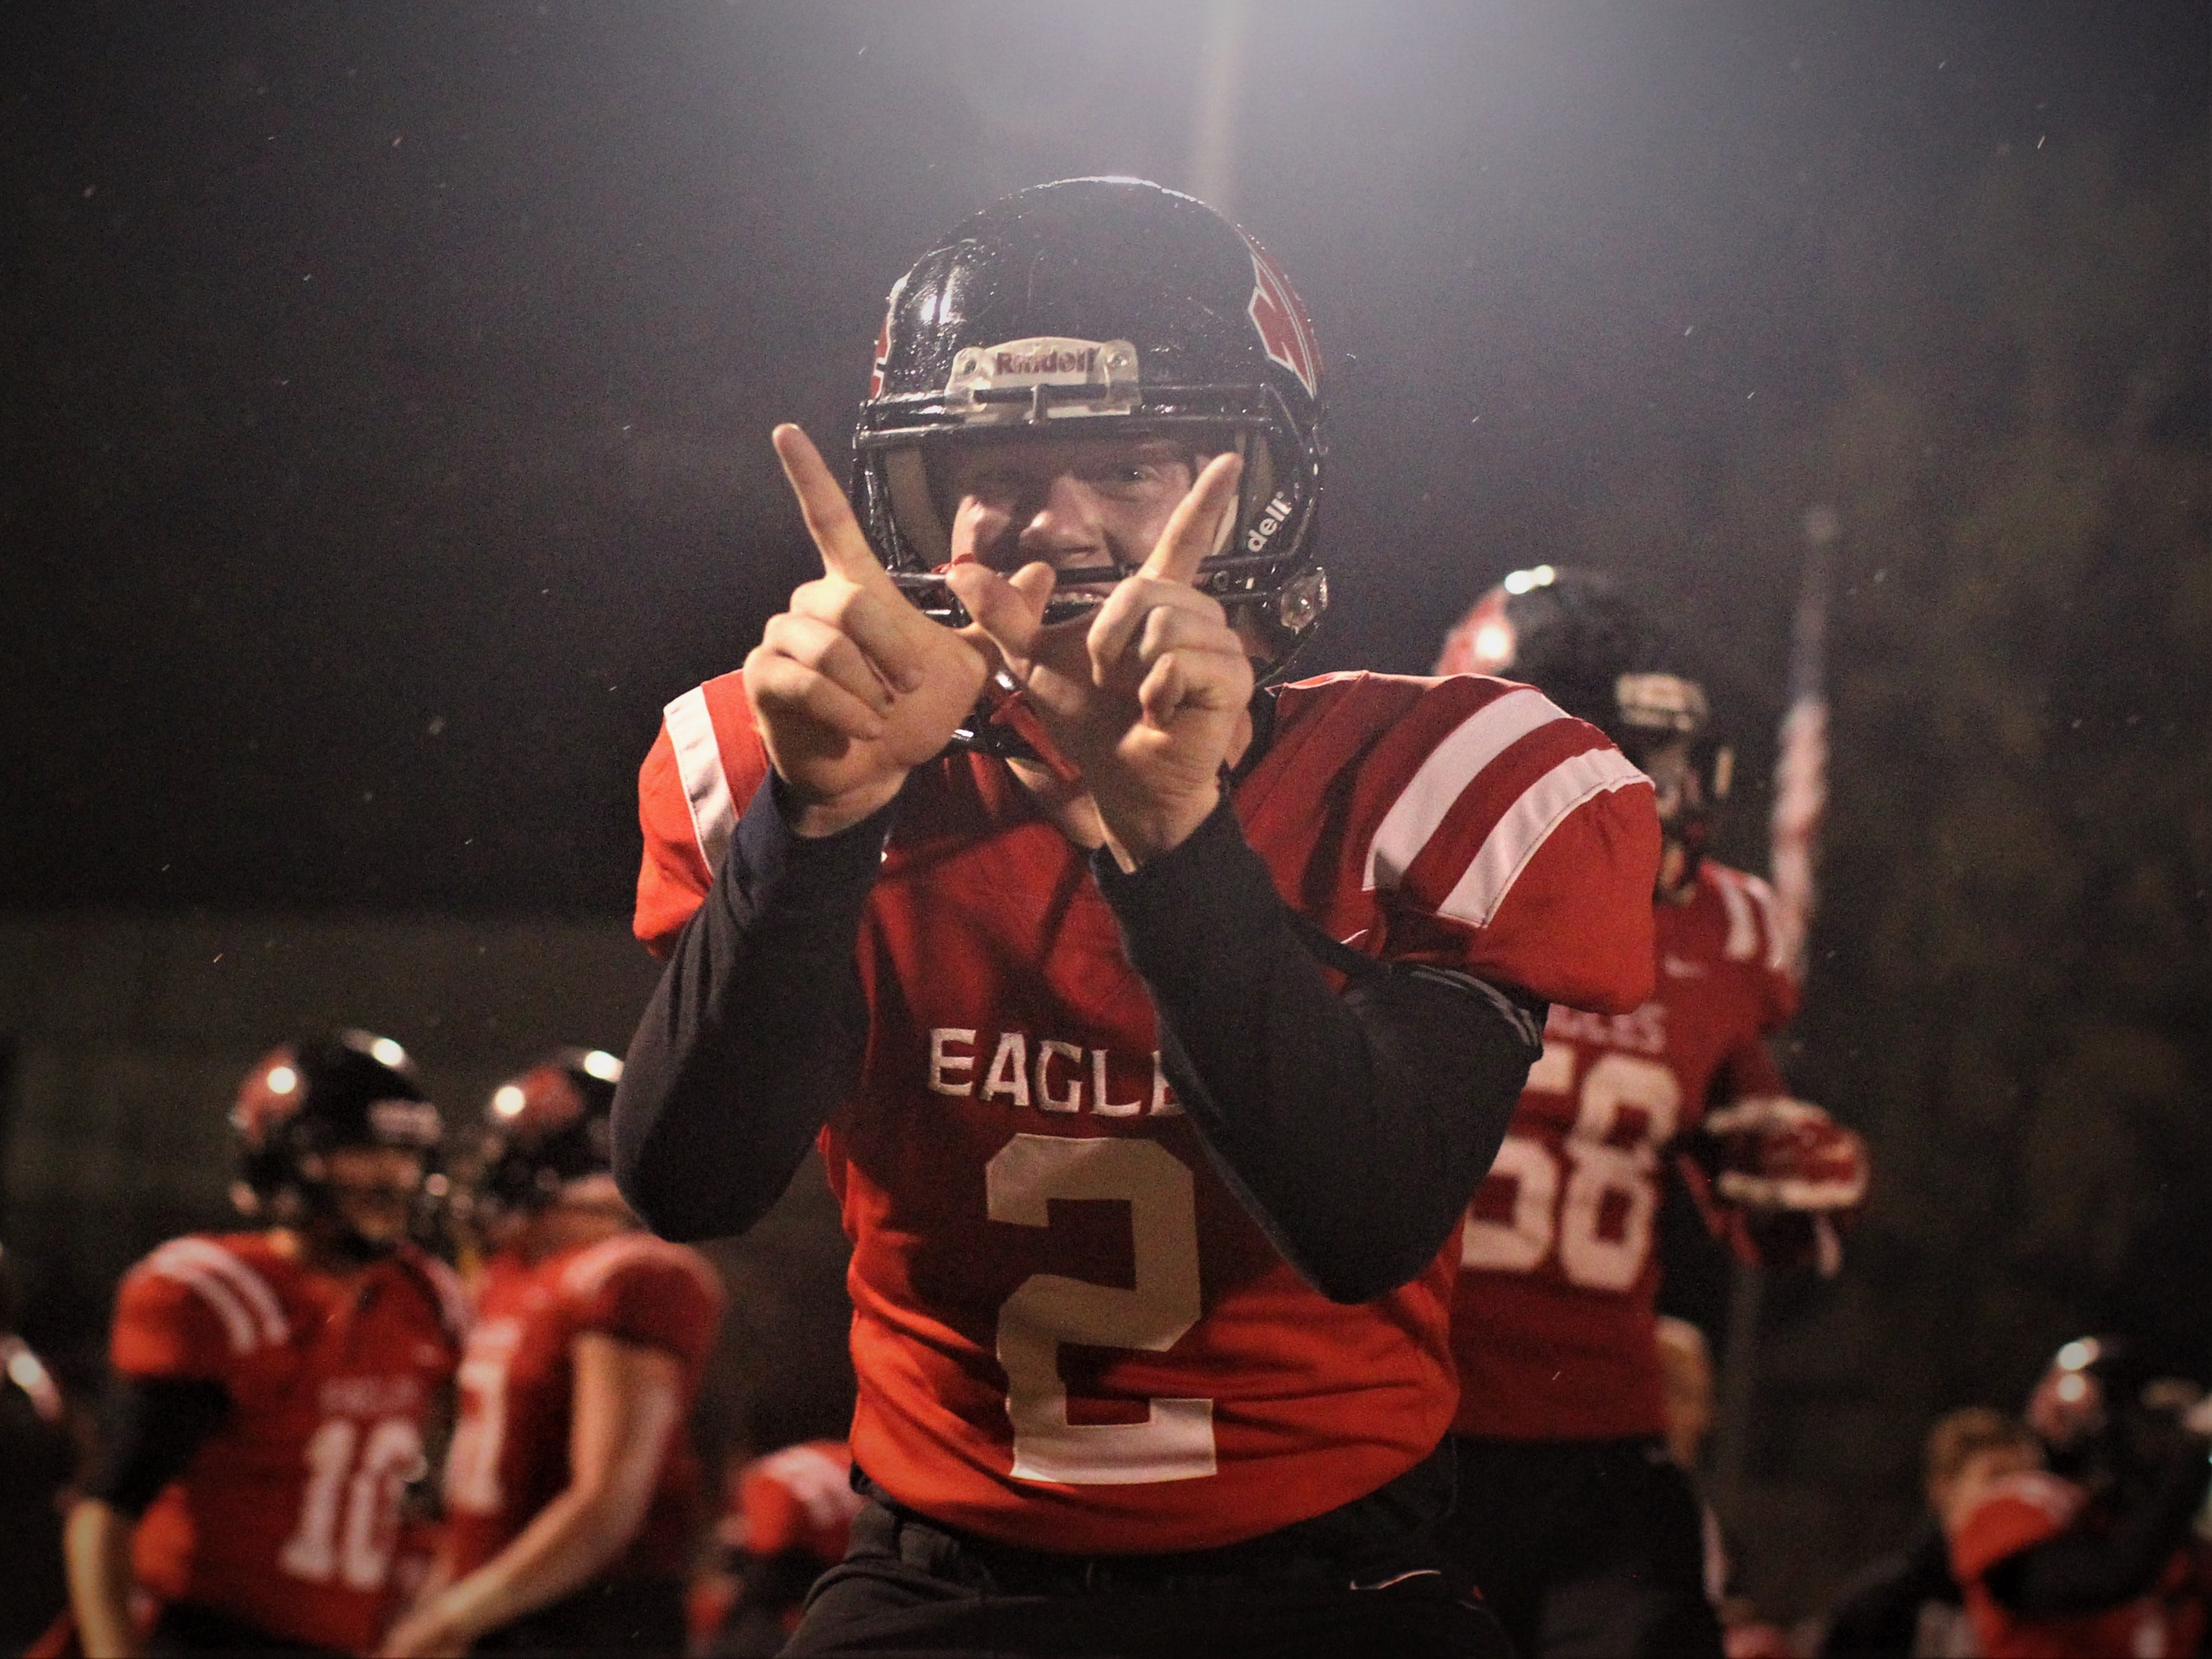 NFC senior wide receiver E.C. Presnell celebrates a 23-20 win over Victory Christian in a Class 2A state semifinal.